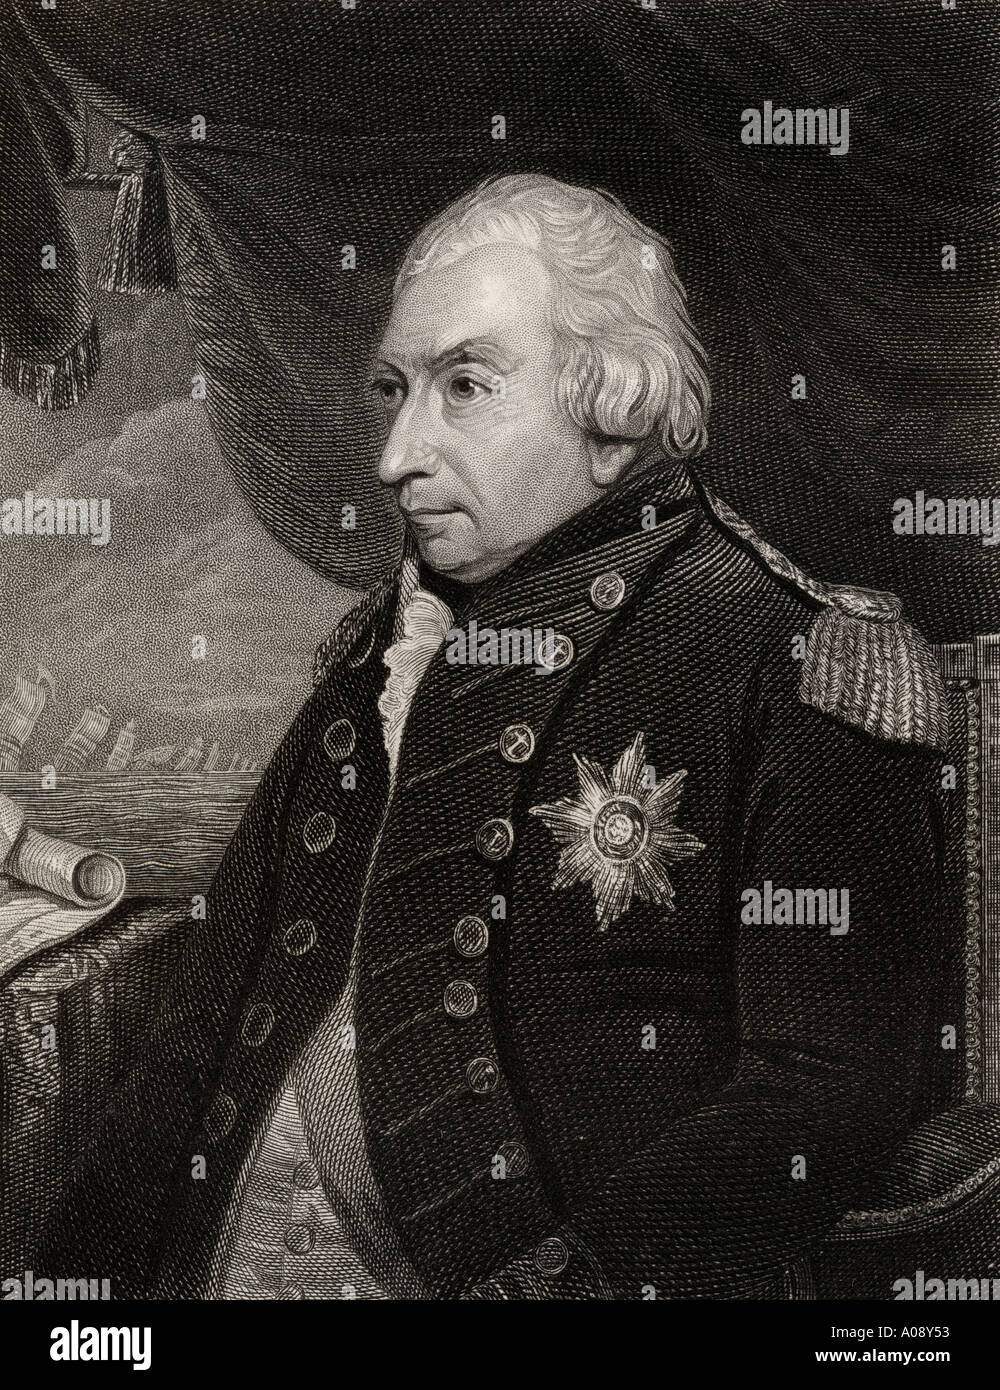 Admiral of the Fleet John Jervis, 1st Earl of St Vincent, 1735 - 1823.  Admiral in the British Royal Navy and a member of parliament. - Stock Image